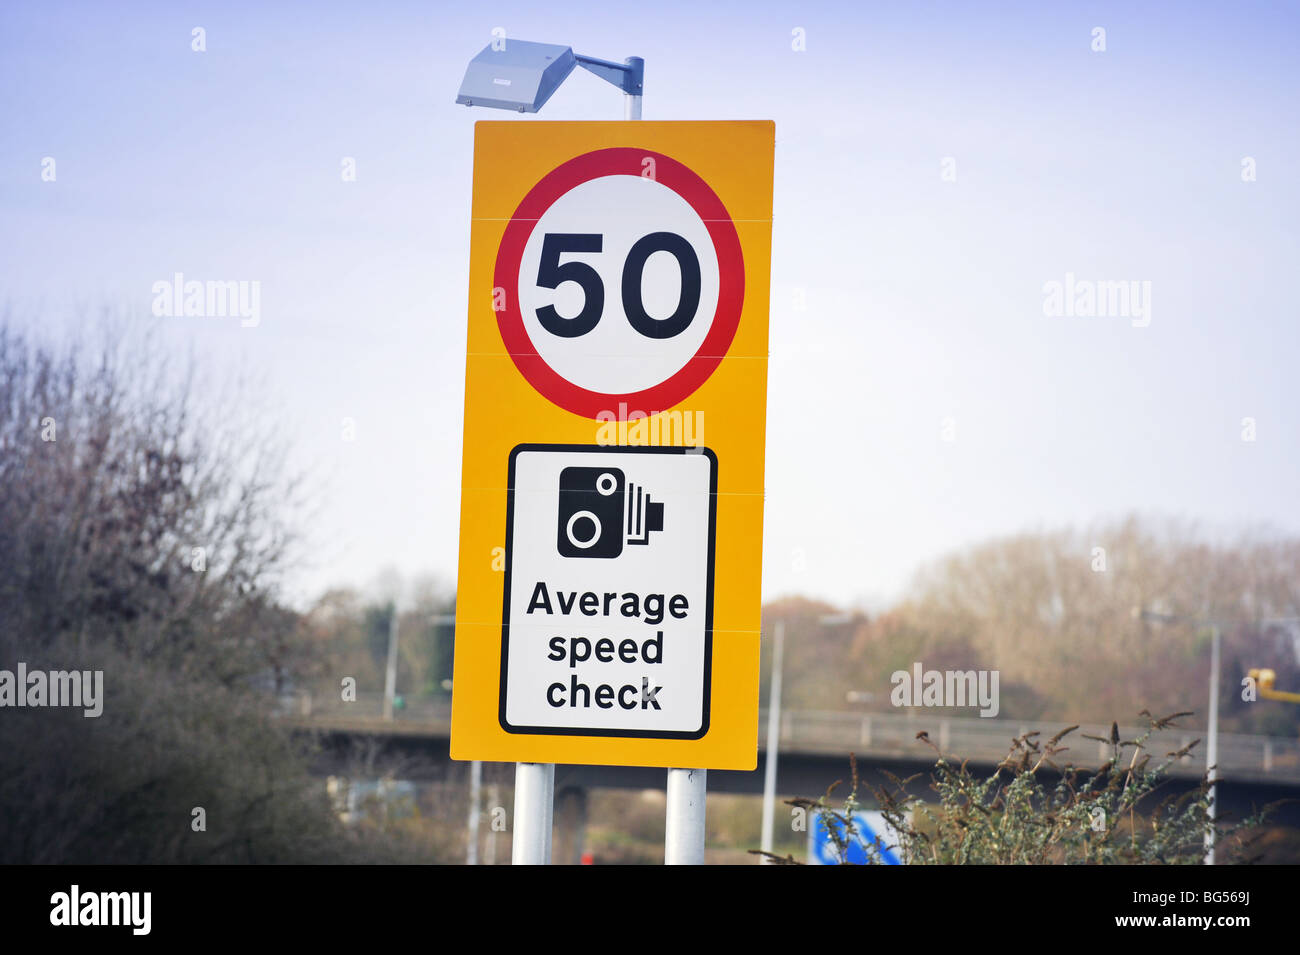 average speed check 50 MPH ( miles per hour) sigh on uk motorway - Stock Image